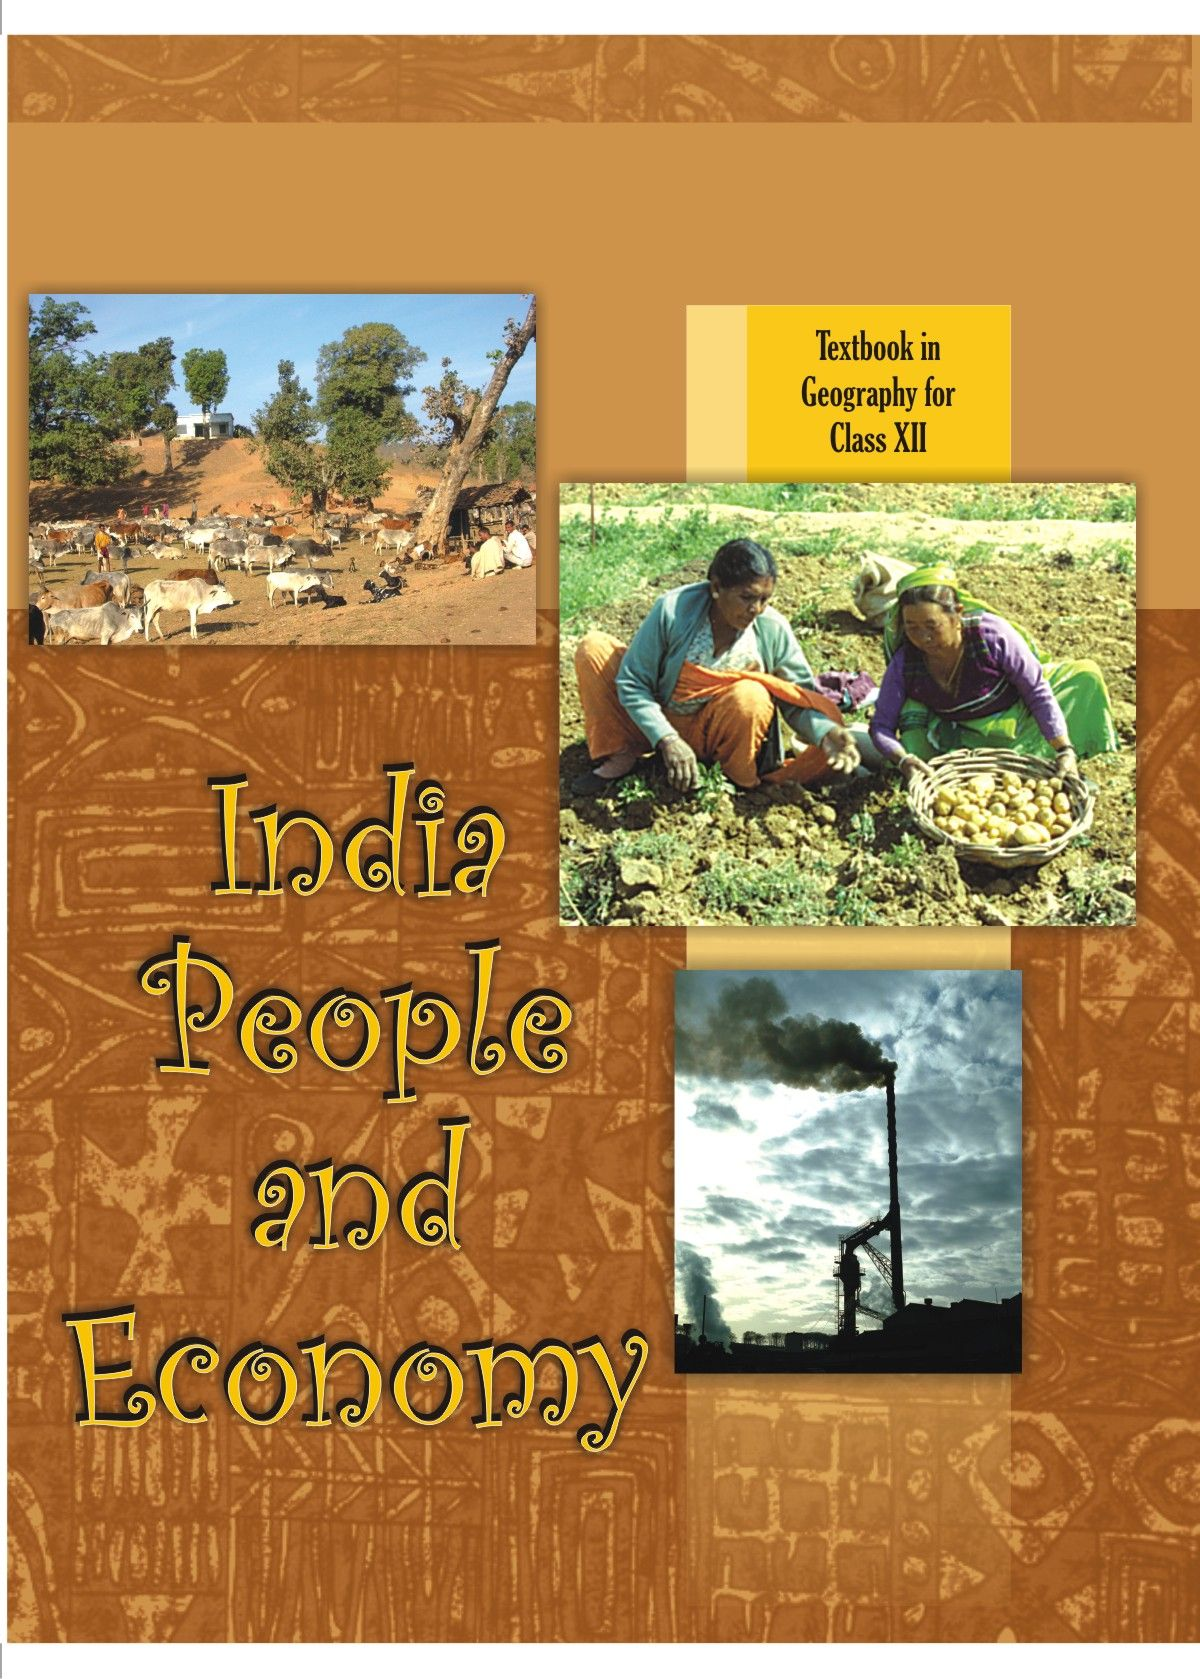 NCERT Books Archives AFEIAS Textbook, India people